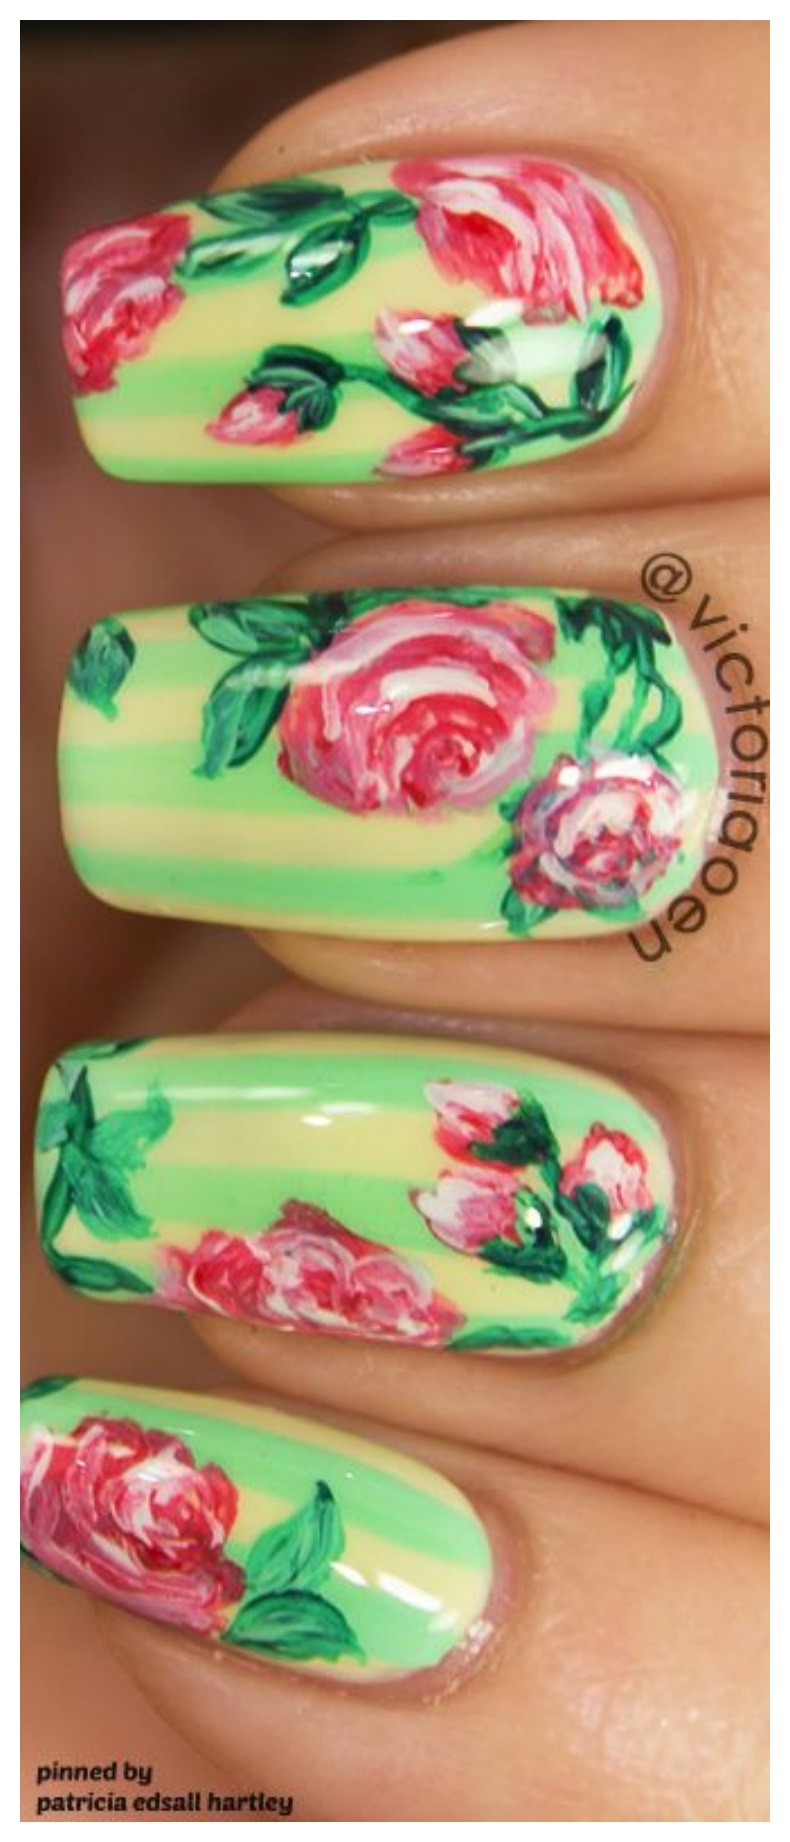 Spring Nails Designs 20189 having fun with Colors (6)